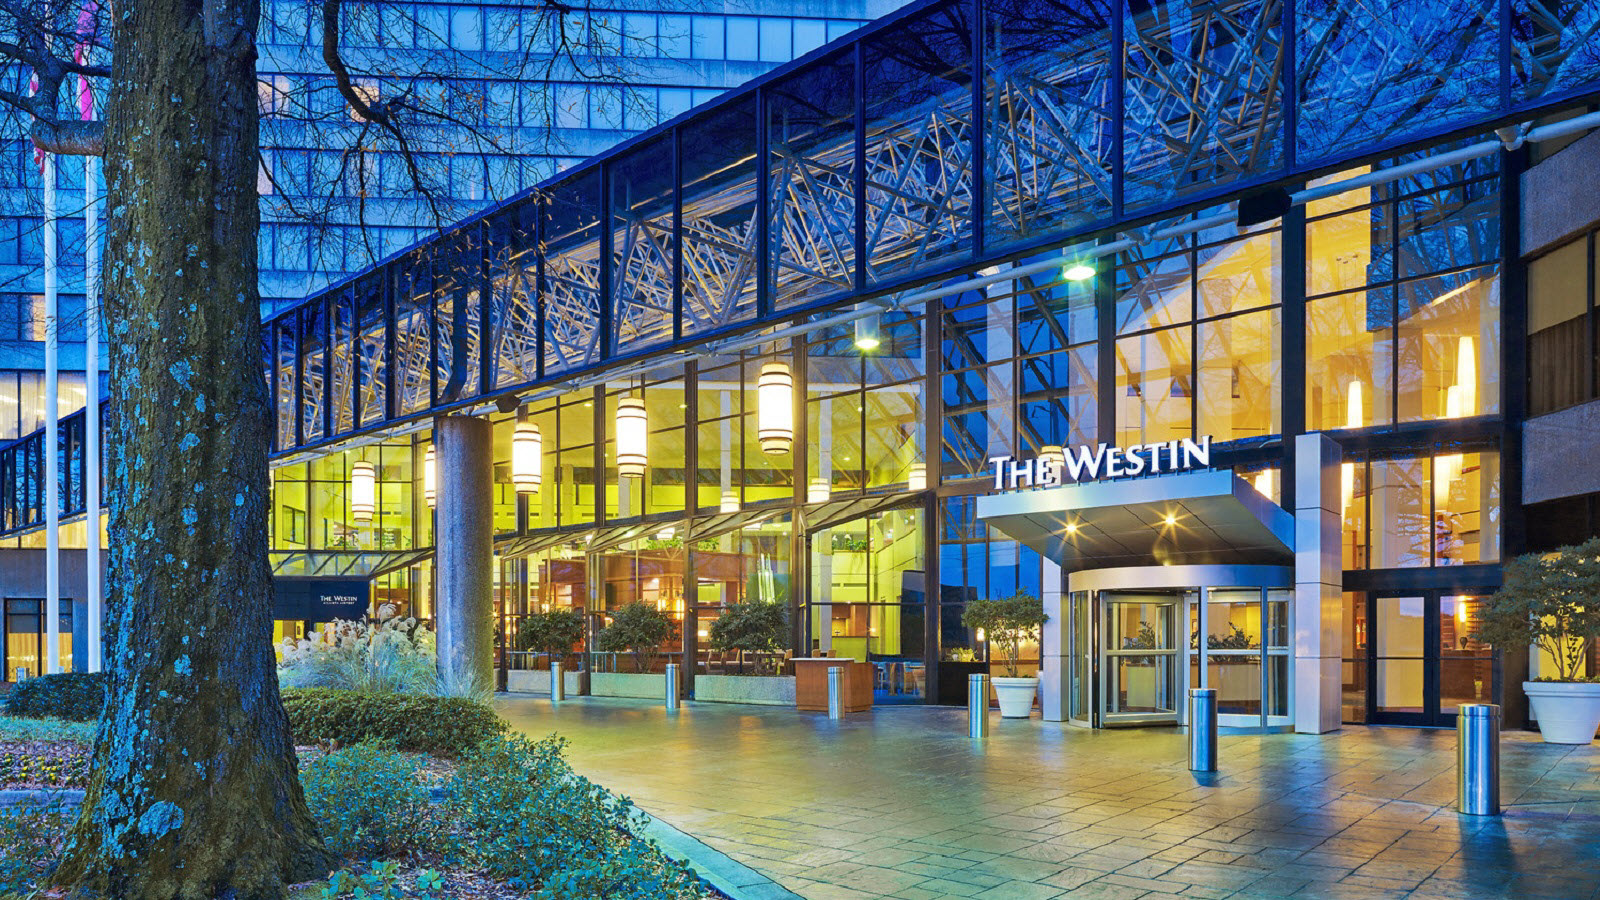 https://www.hotelsbyday.com/_data/default-hotel_image/0/1166/the-westin-atlanta-airport-exterior-entrance.jpg